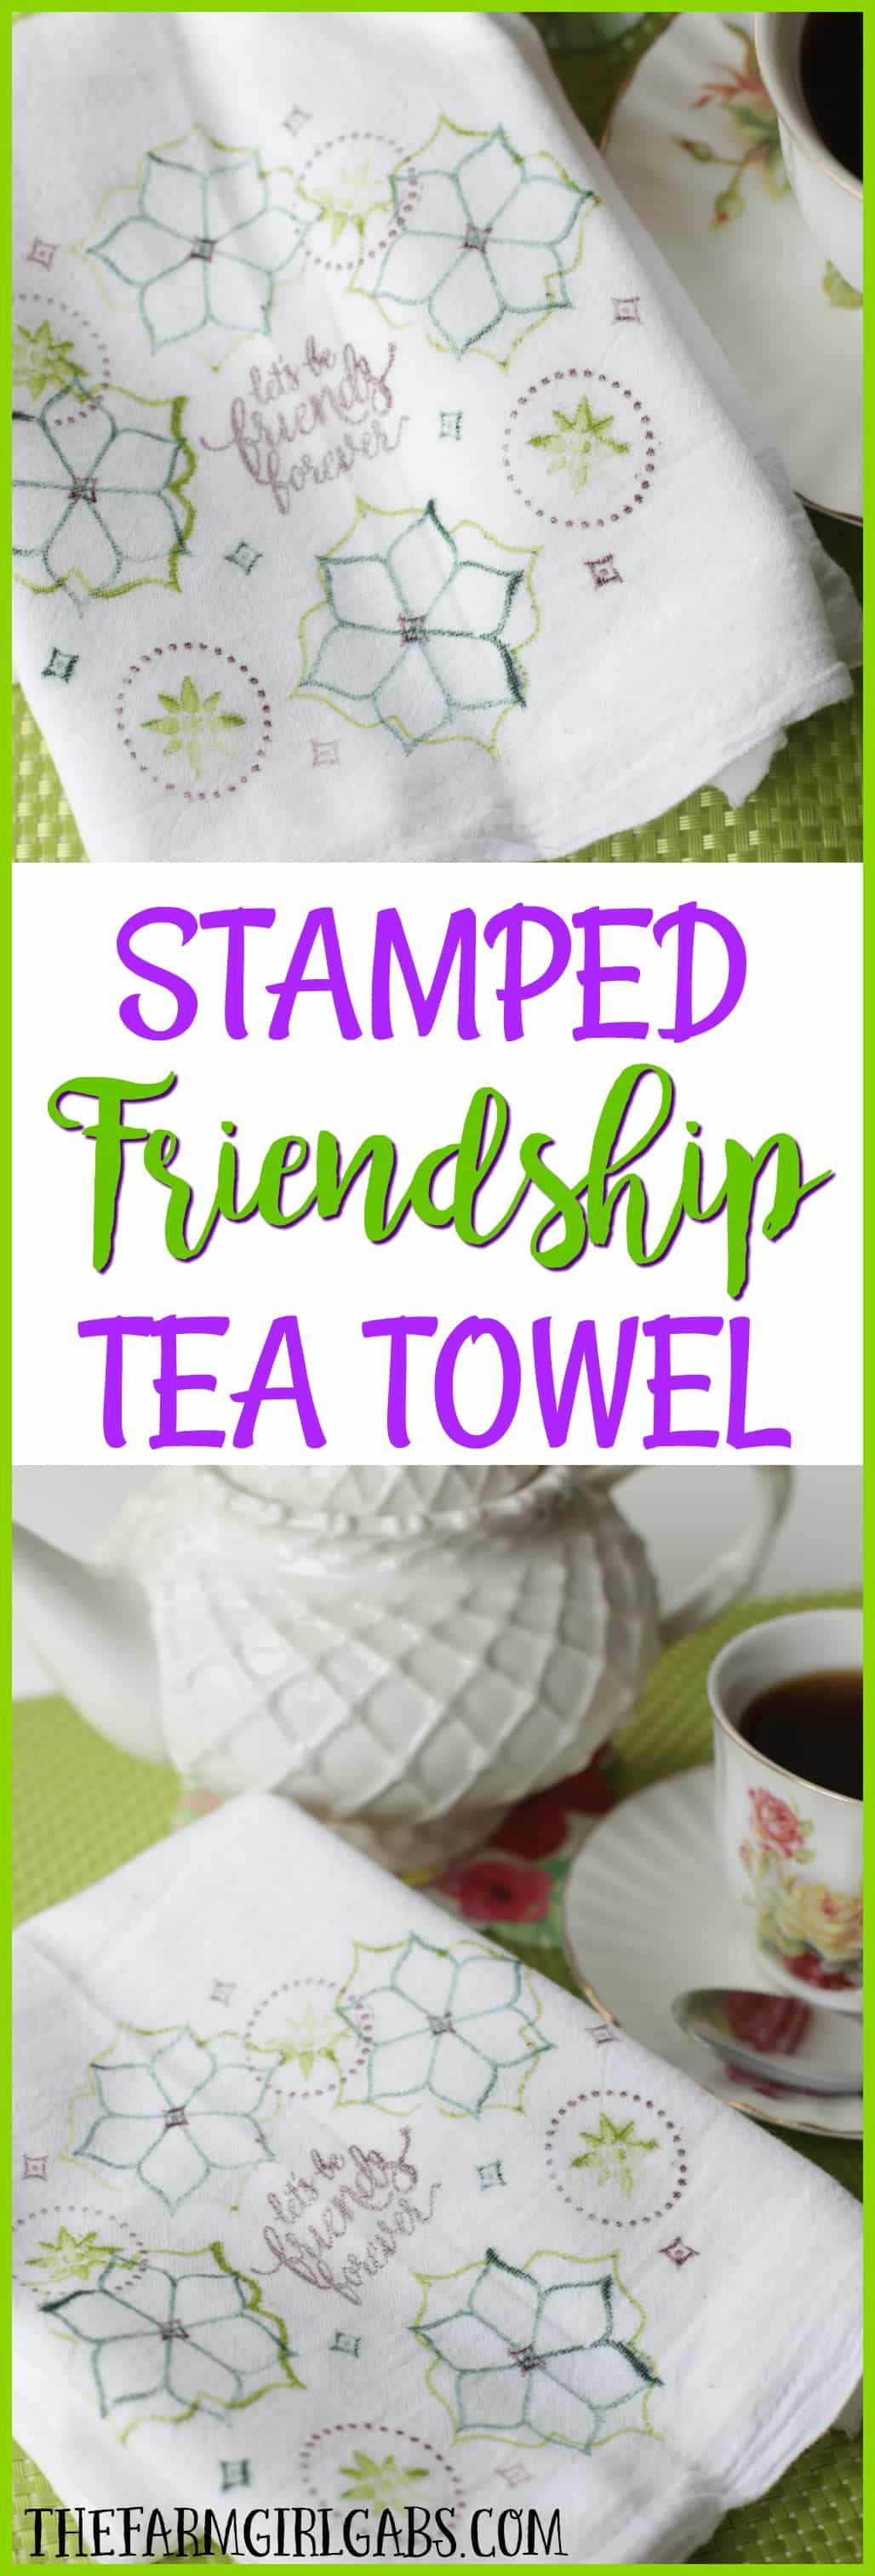 This easy DIY Stamped Friendship Tea Towel is the perfect gift from the heart. Make one to giveand make one to keep. Stampin! Up Eastern Beauty set is the star of this craft project.